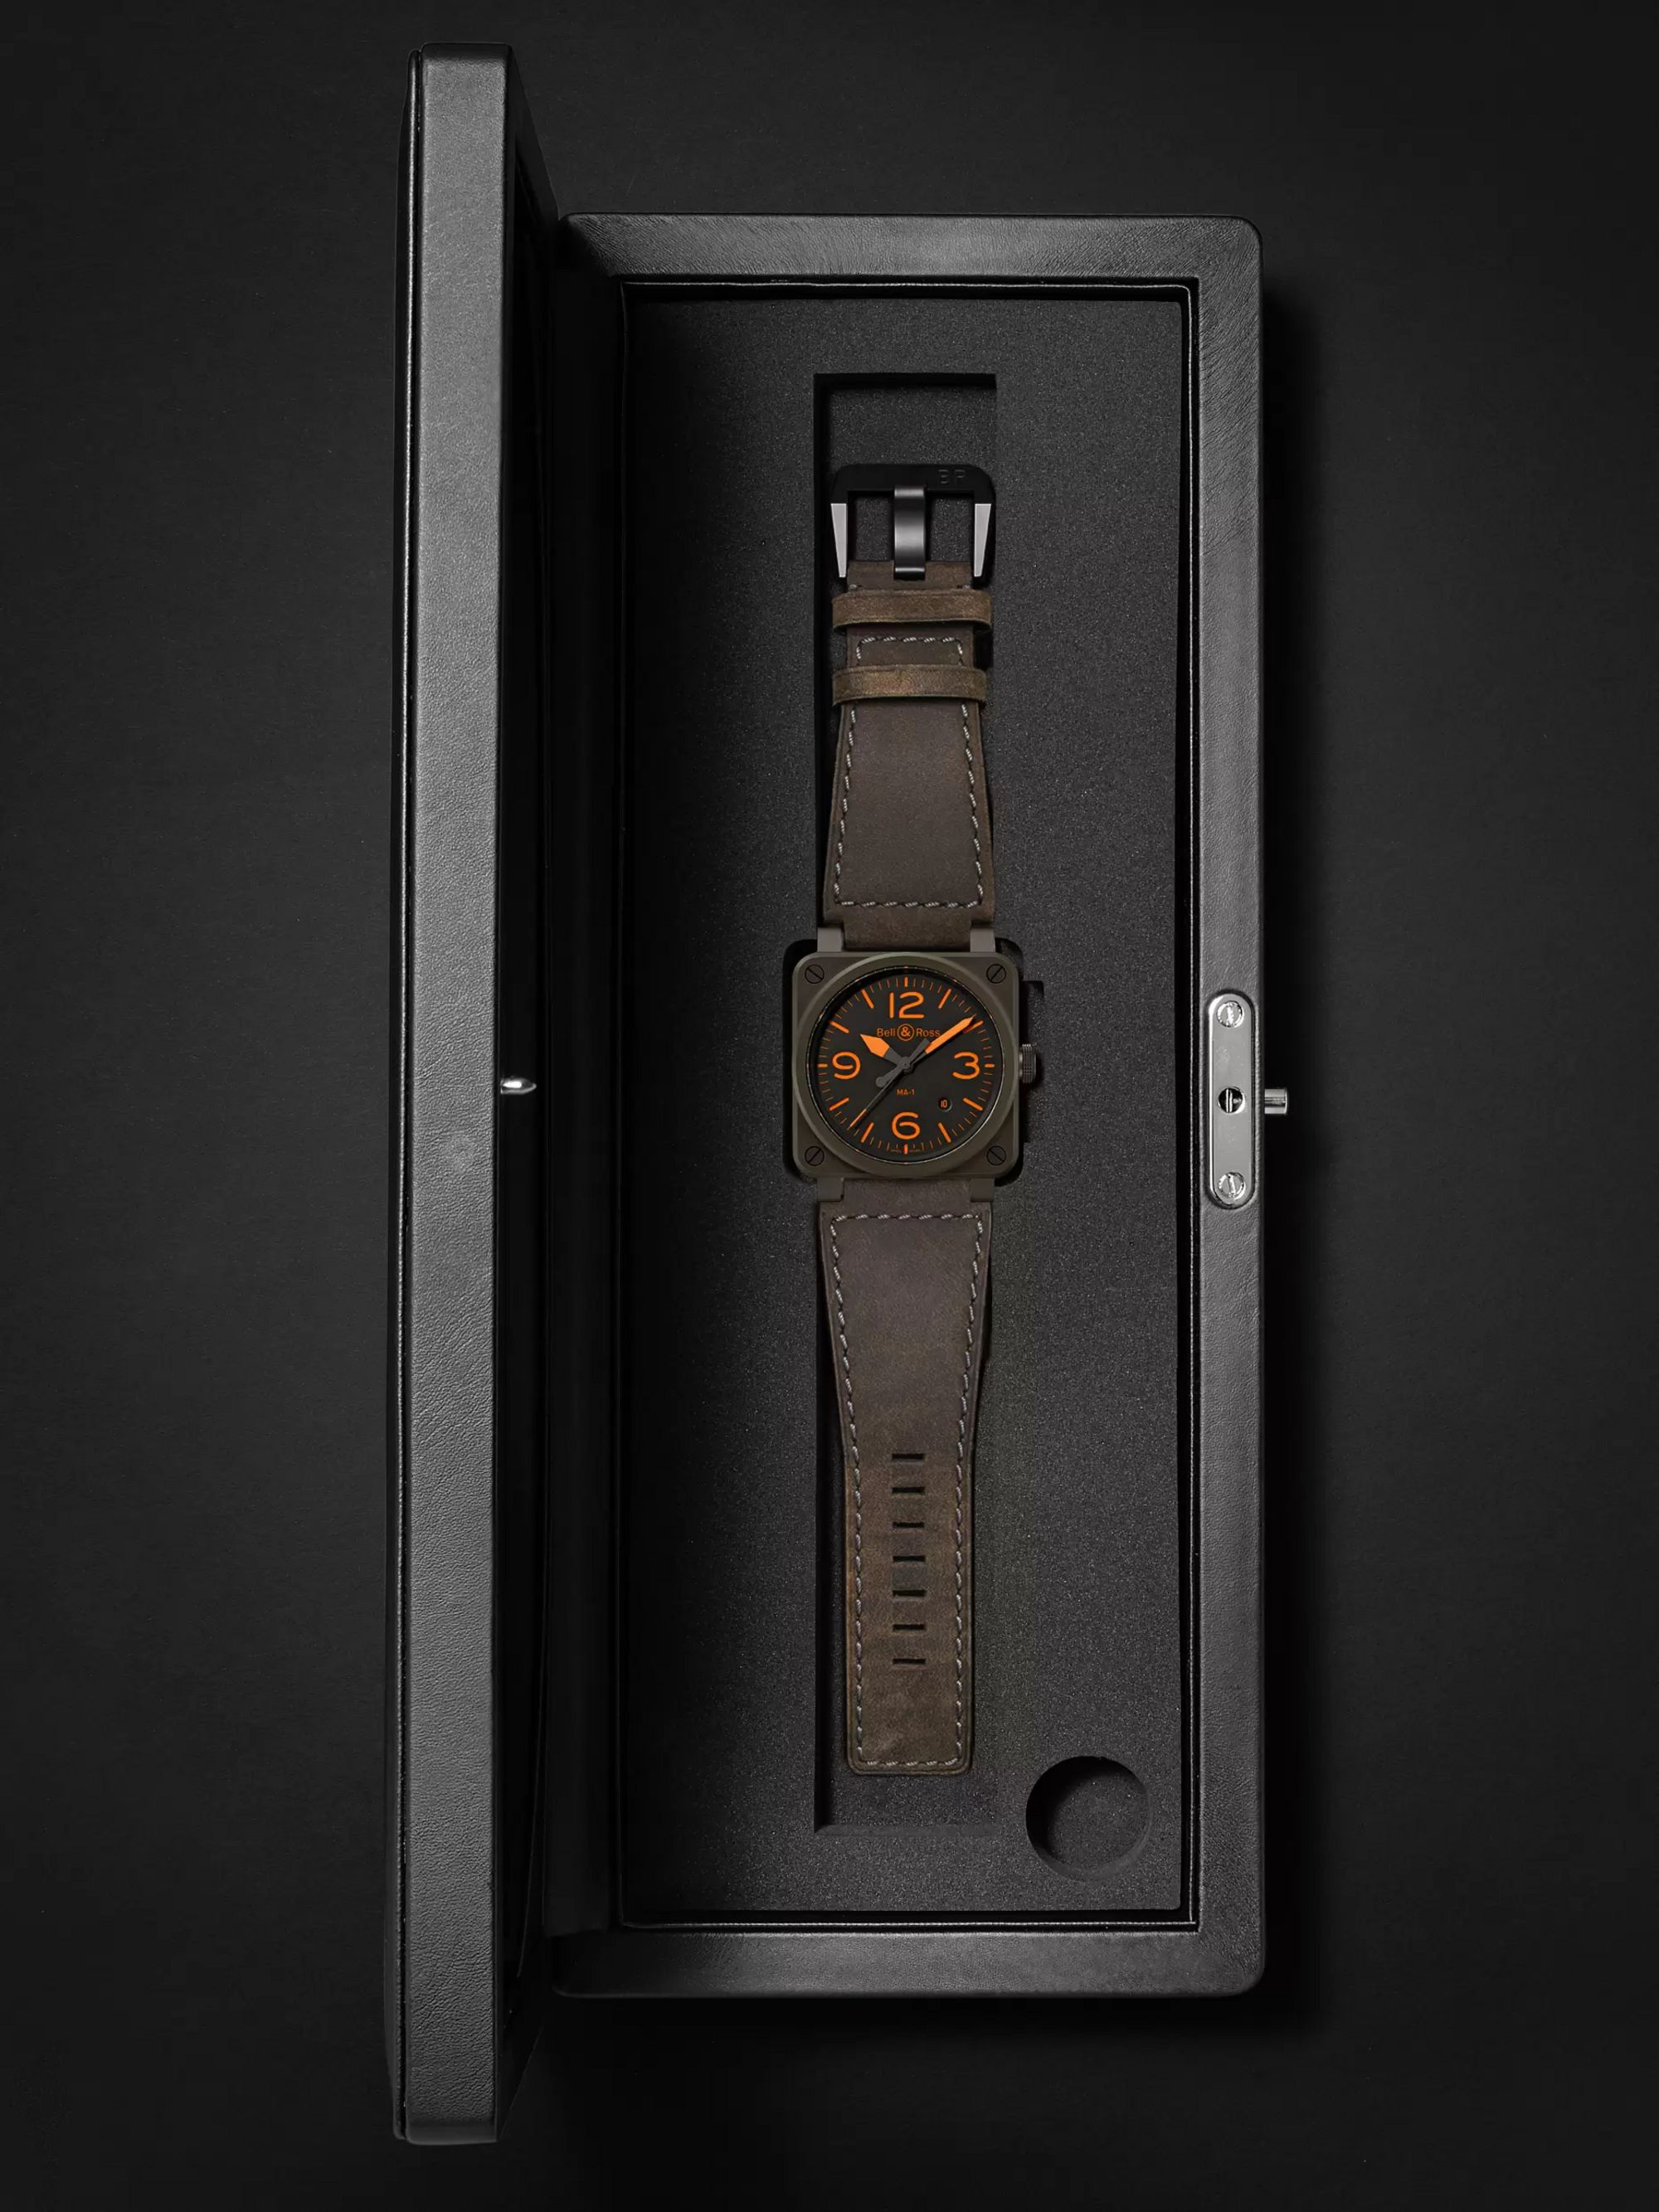 Bell & Ross BR 03-92 MA-1 Limited Edition Automatic 42mm Ceramic and Leather Watch